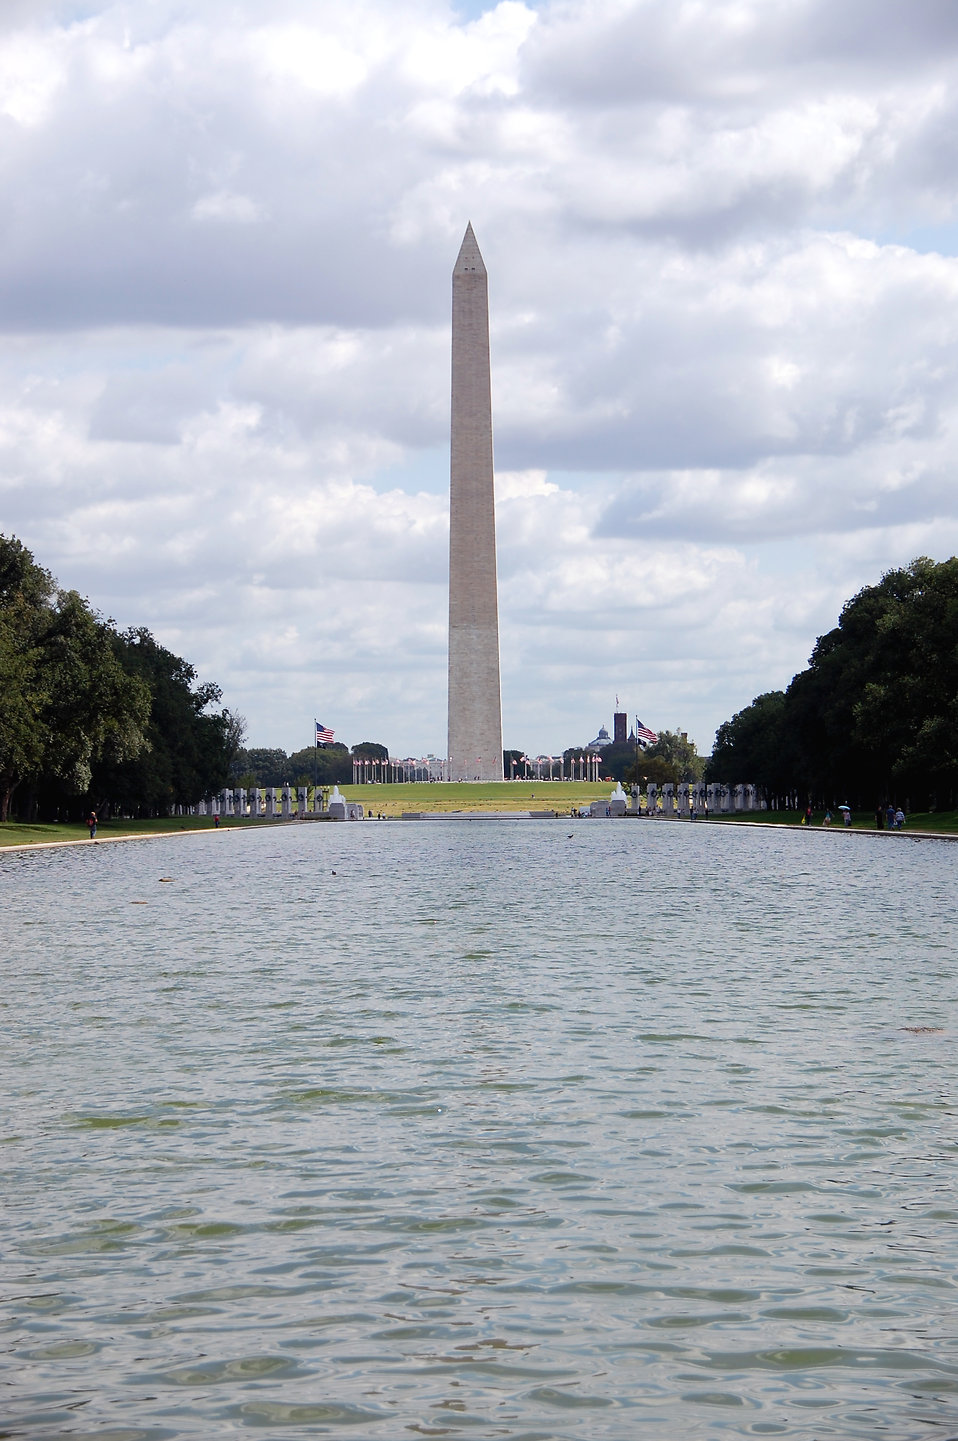 The Washington Monument viewed from the Lincoln Memorial Reflecting Pool in Washington, DC : Free Stock Photo